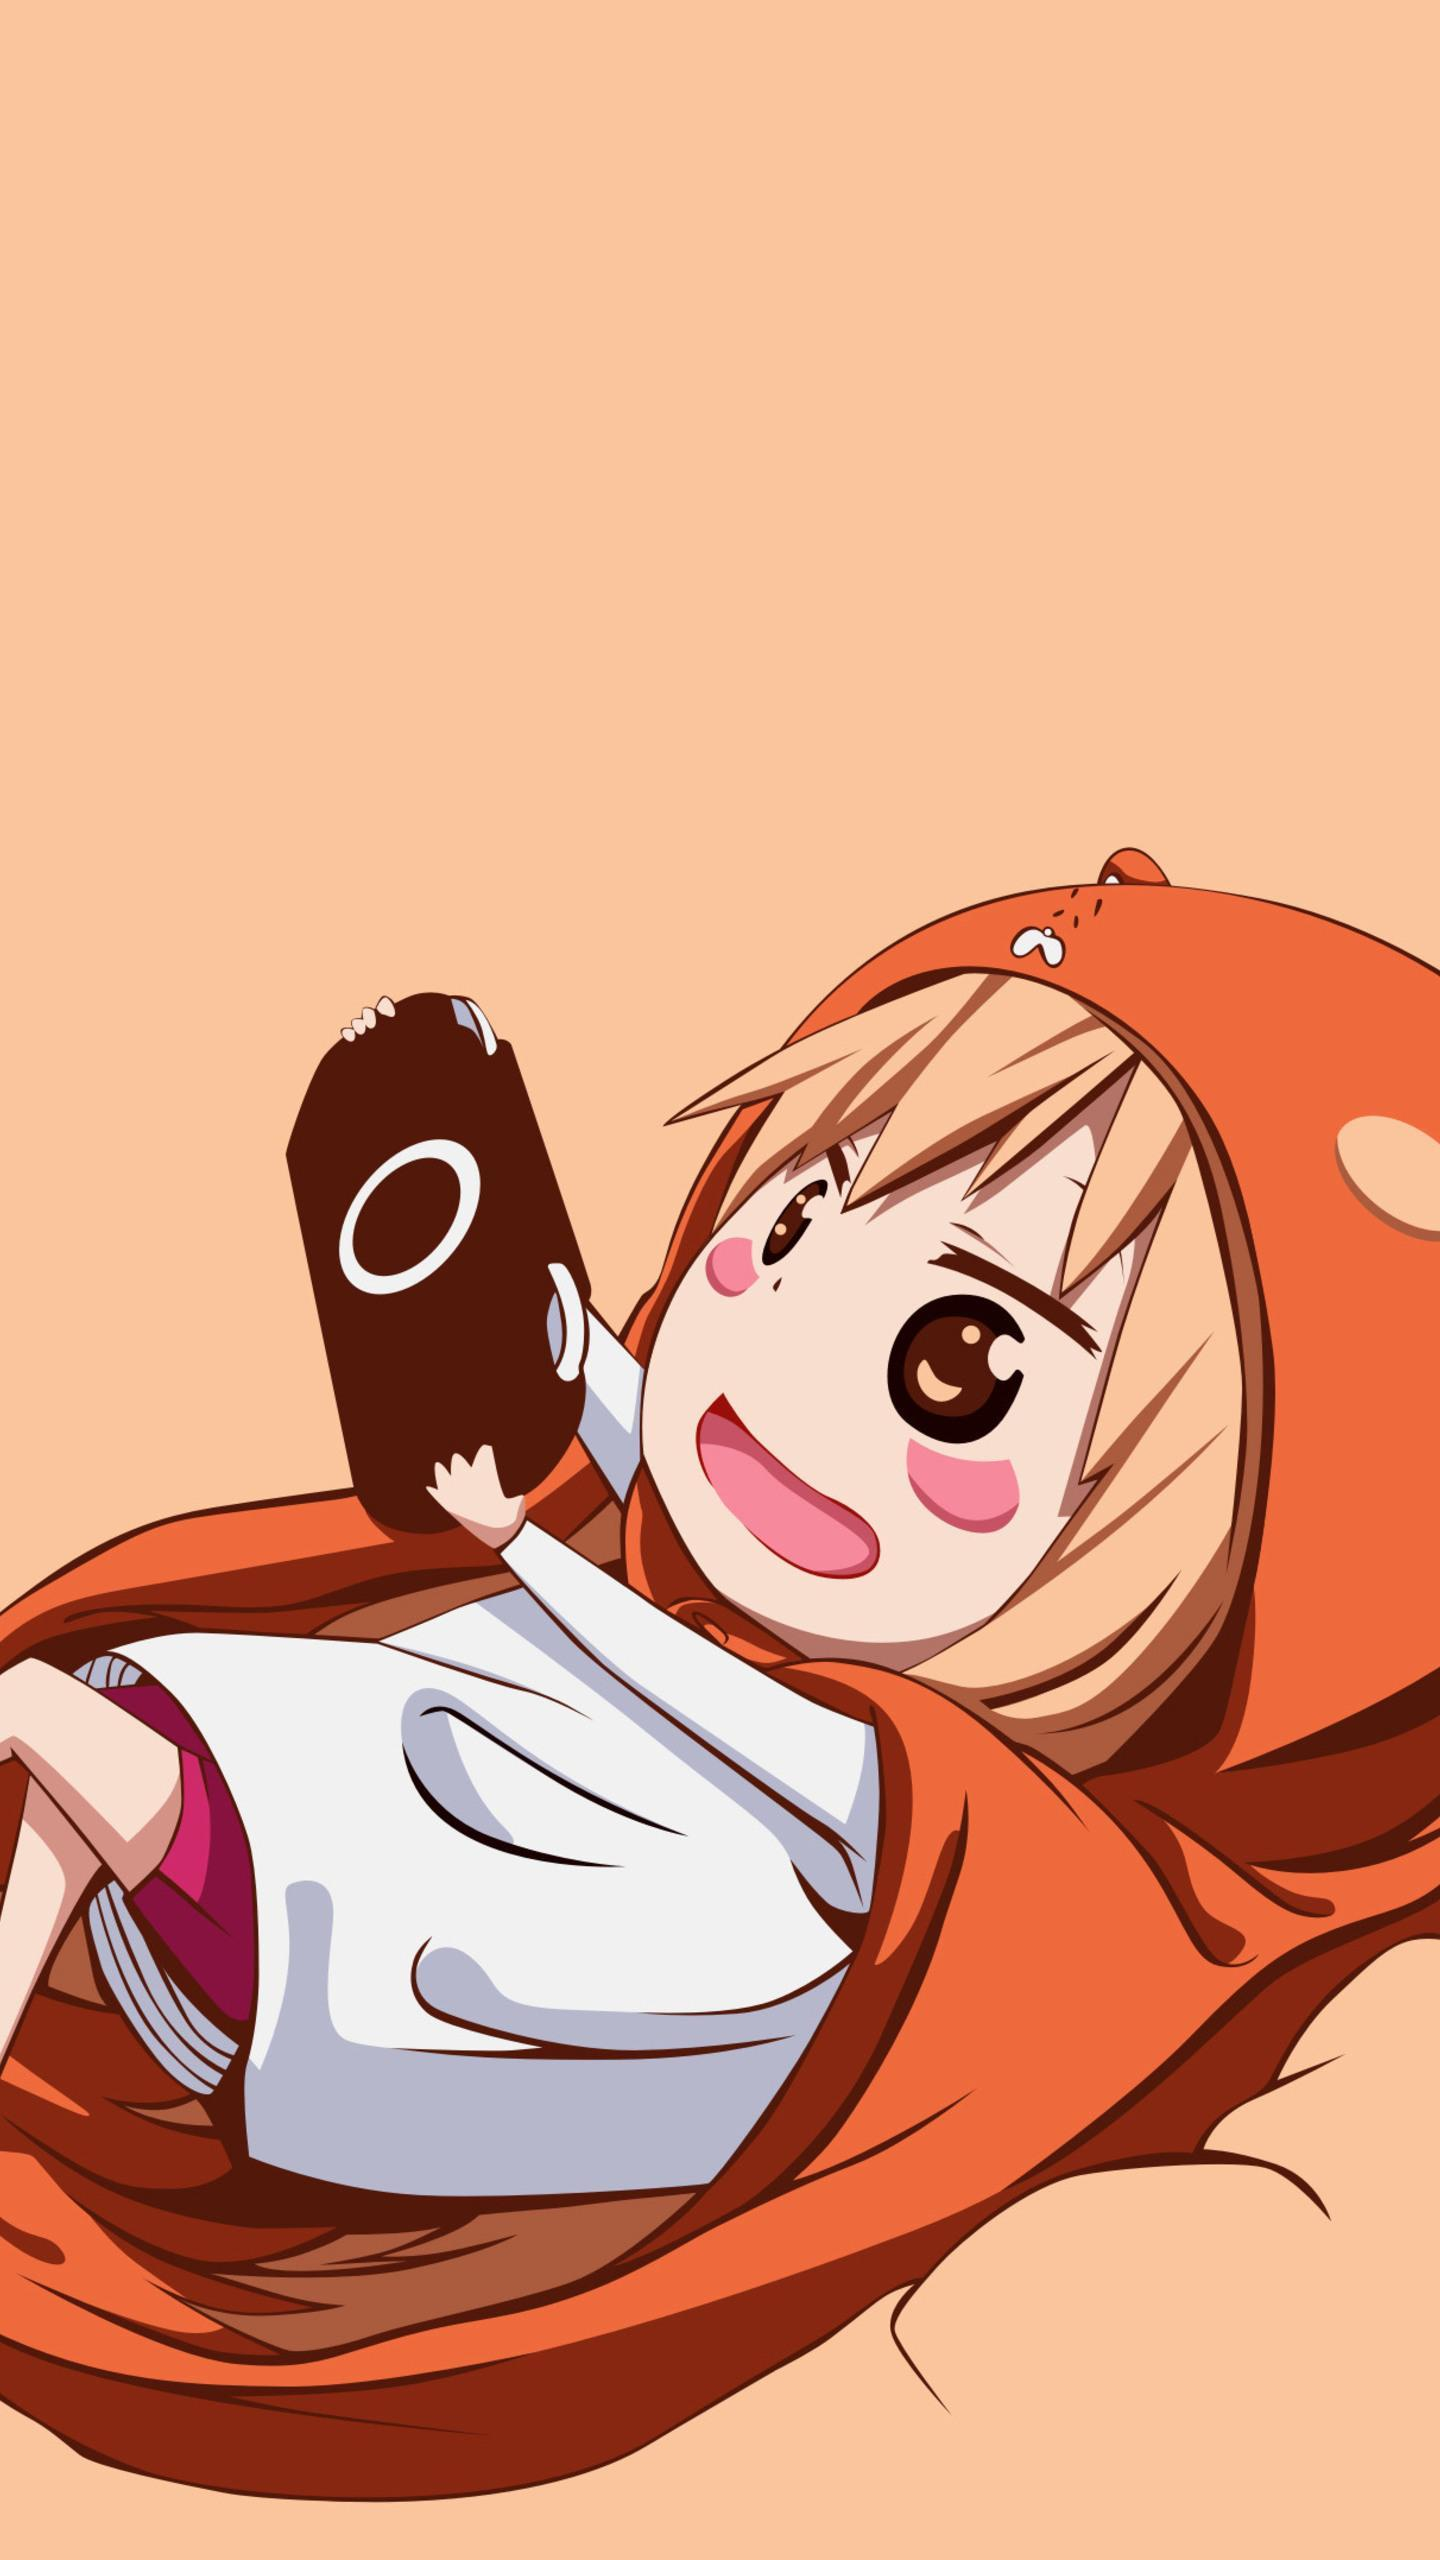 Cute Anime Wallpaper For Android Apk Download